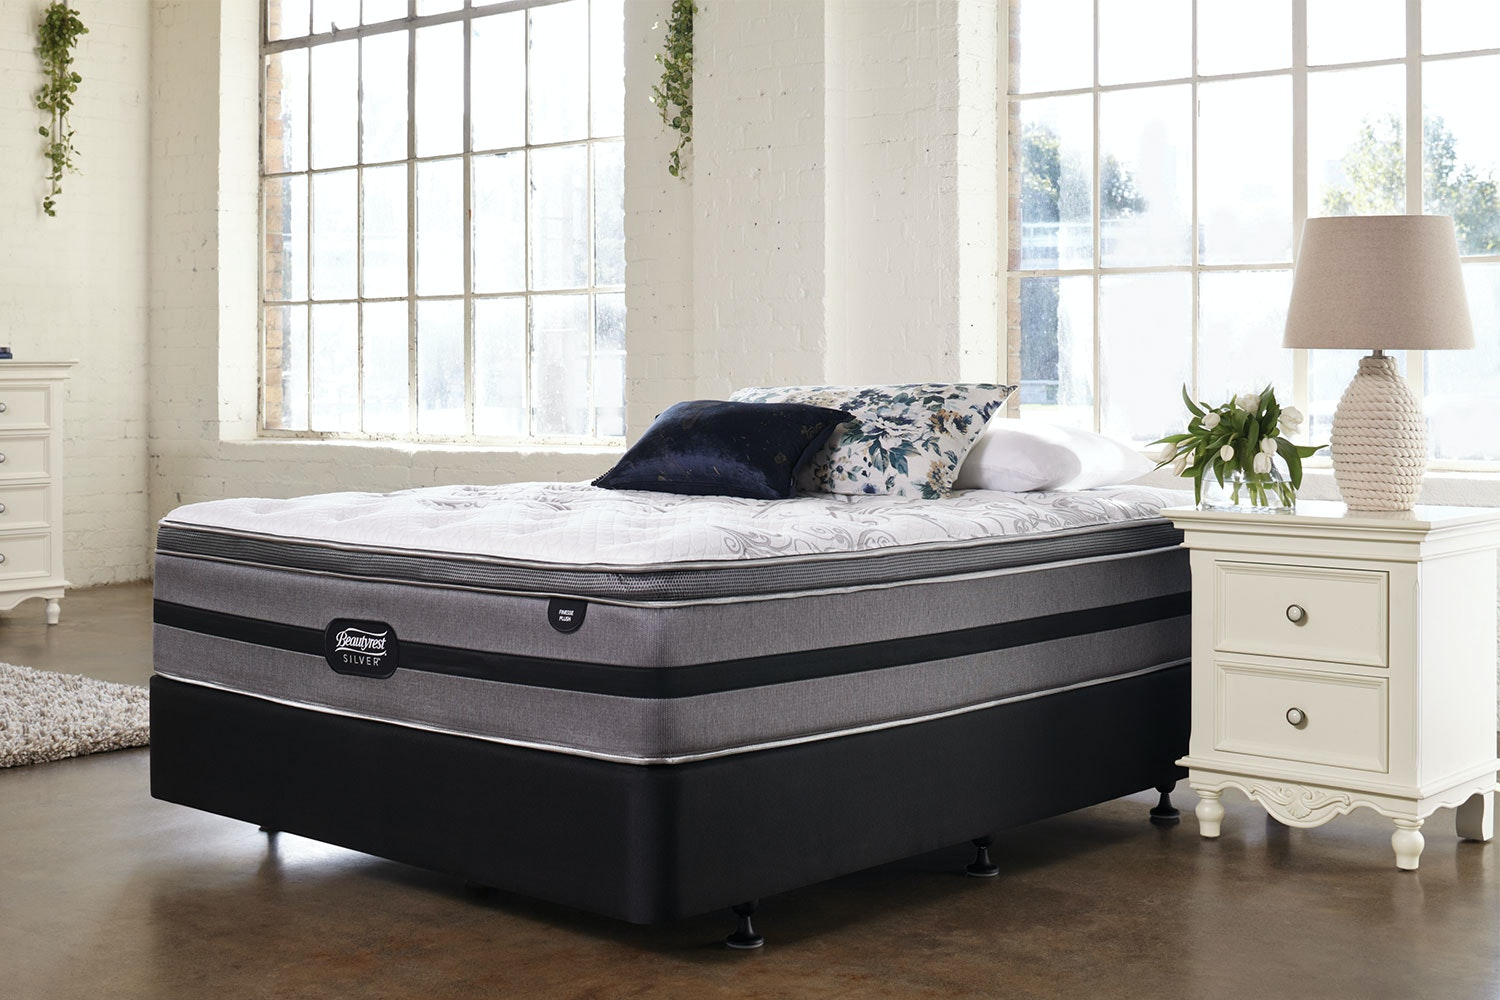 Finesse Plush Super King Bed by Beautyrest